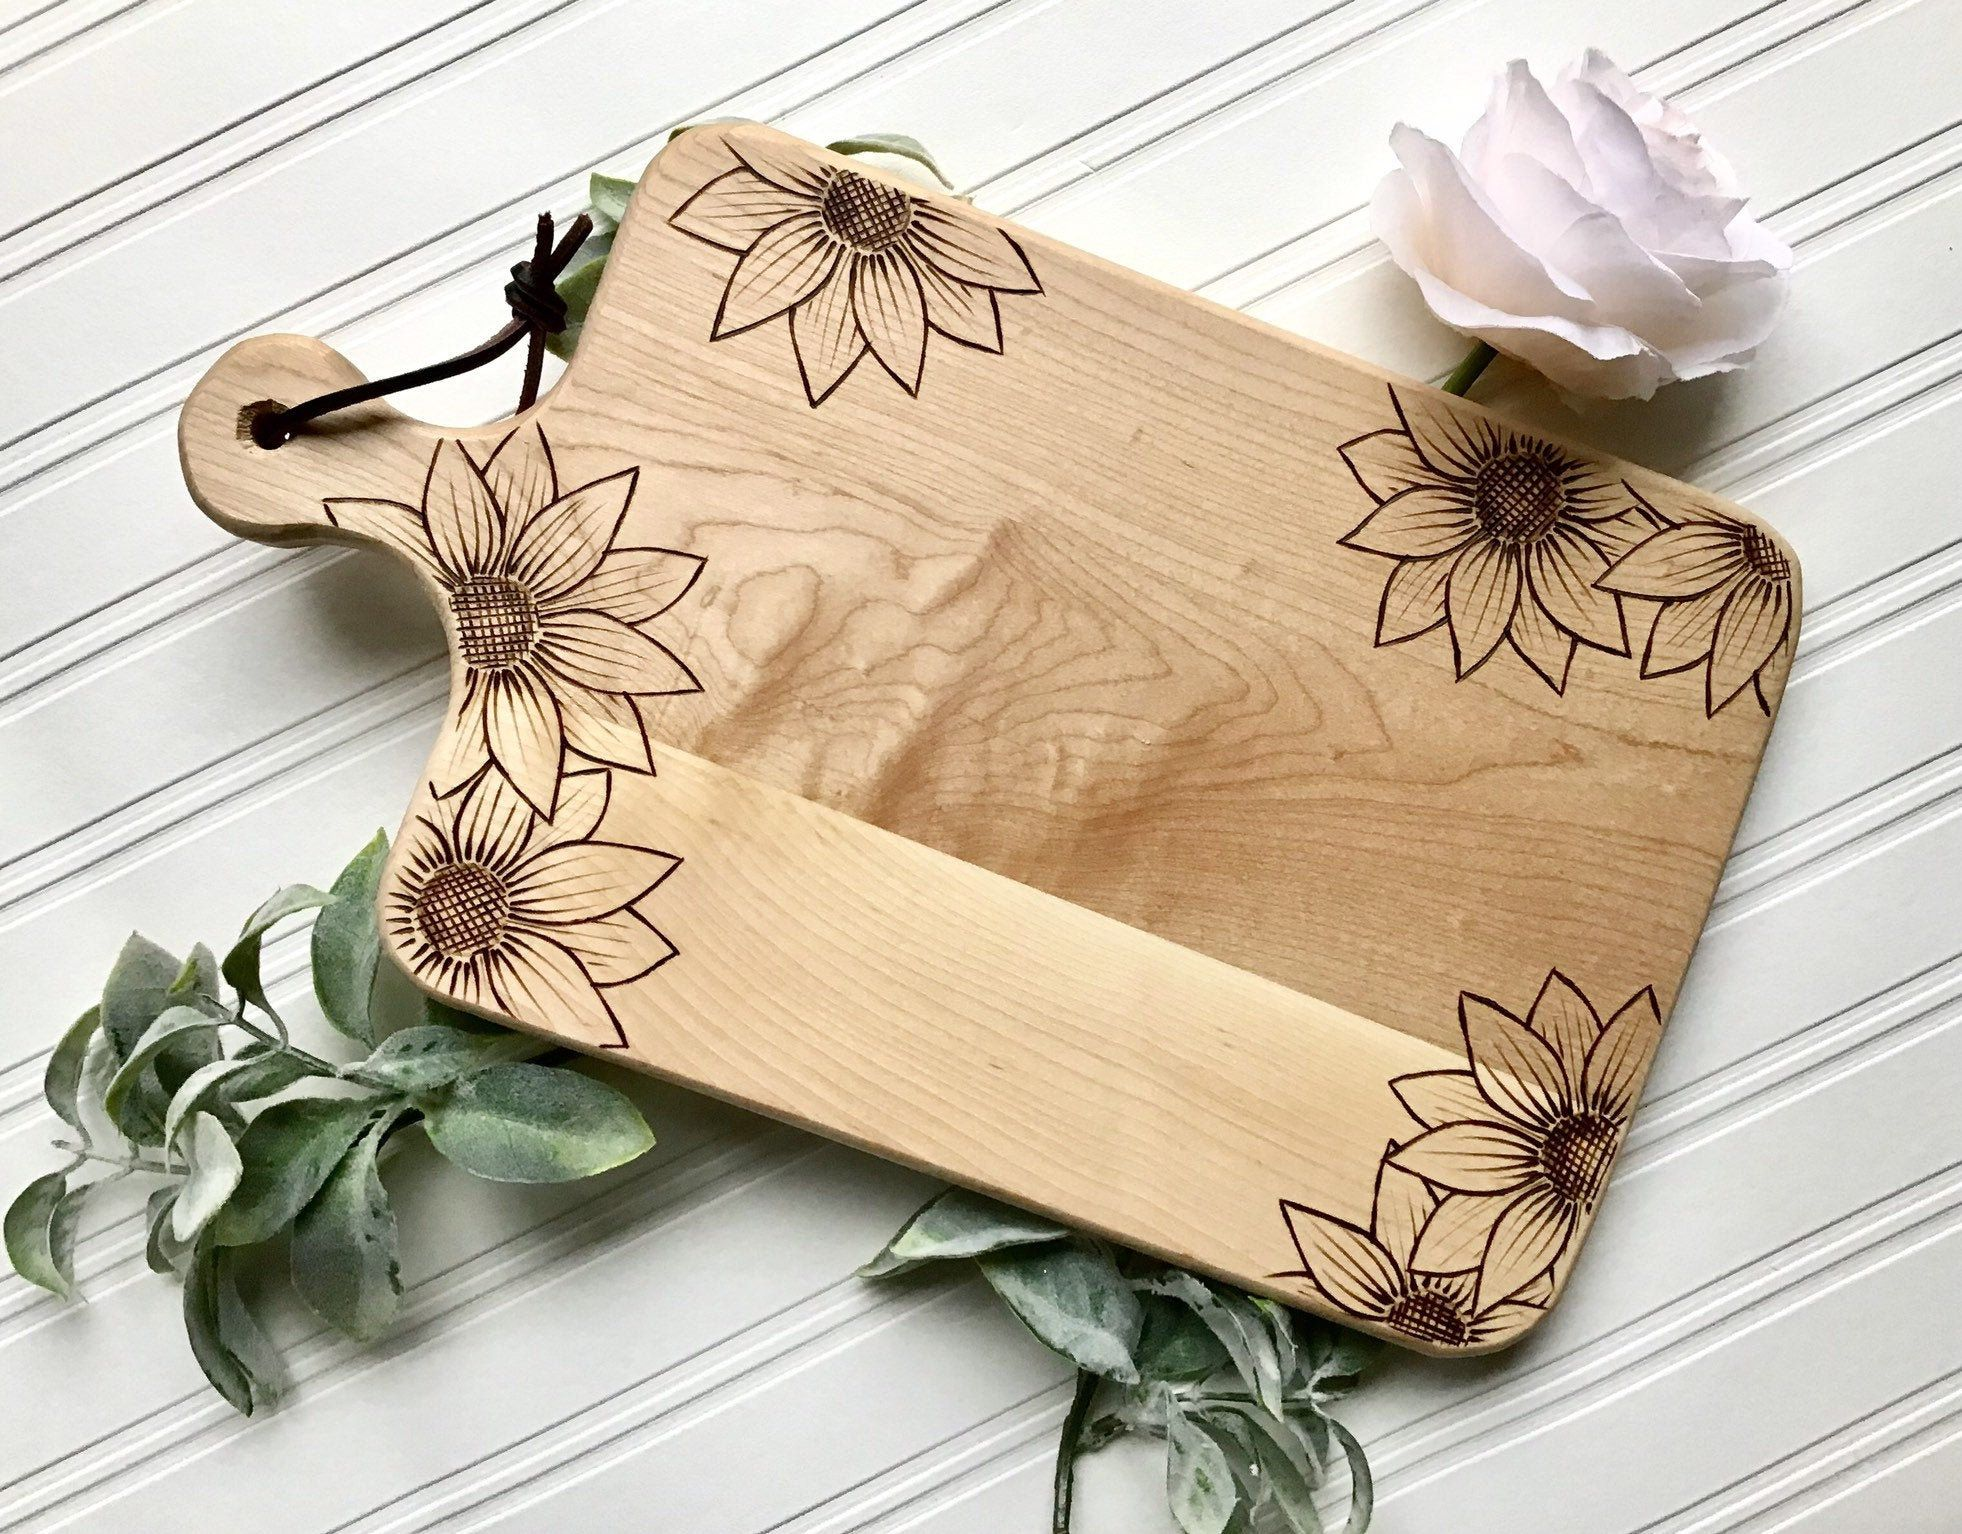 Wood Burned Maple Cheese Plate in Sunflowers